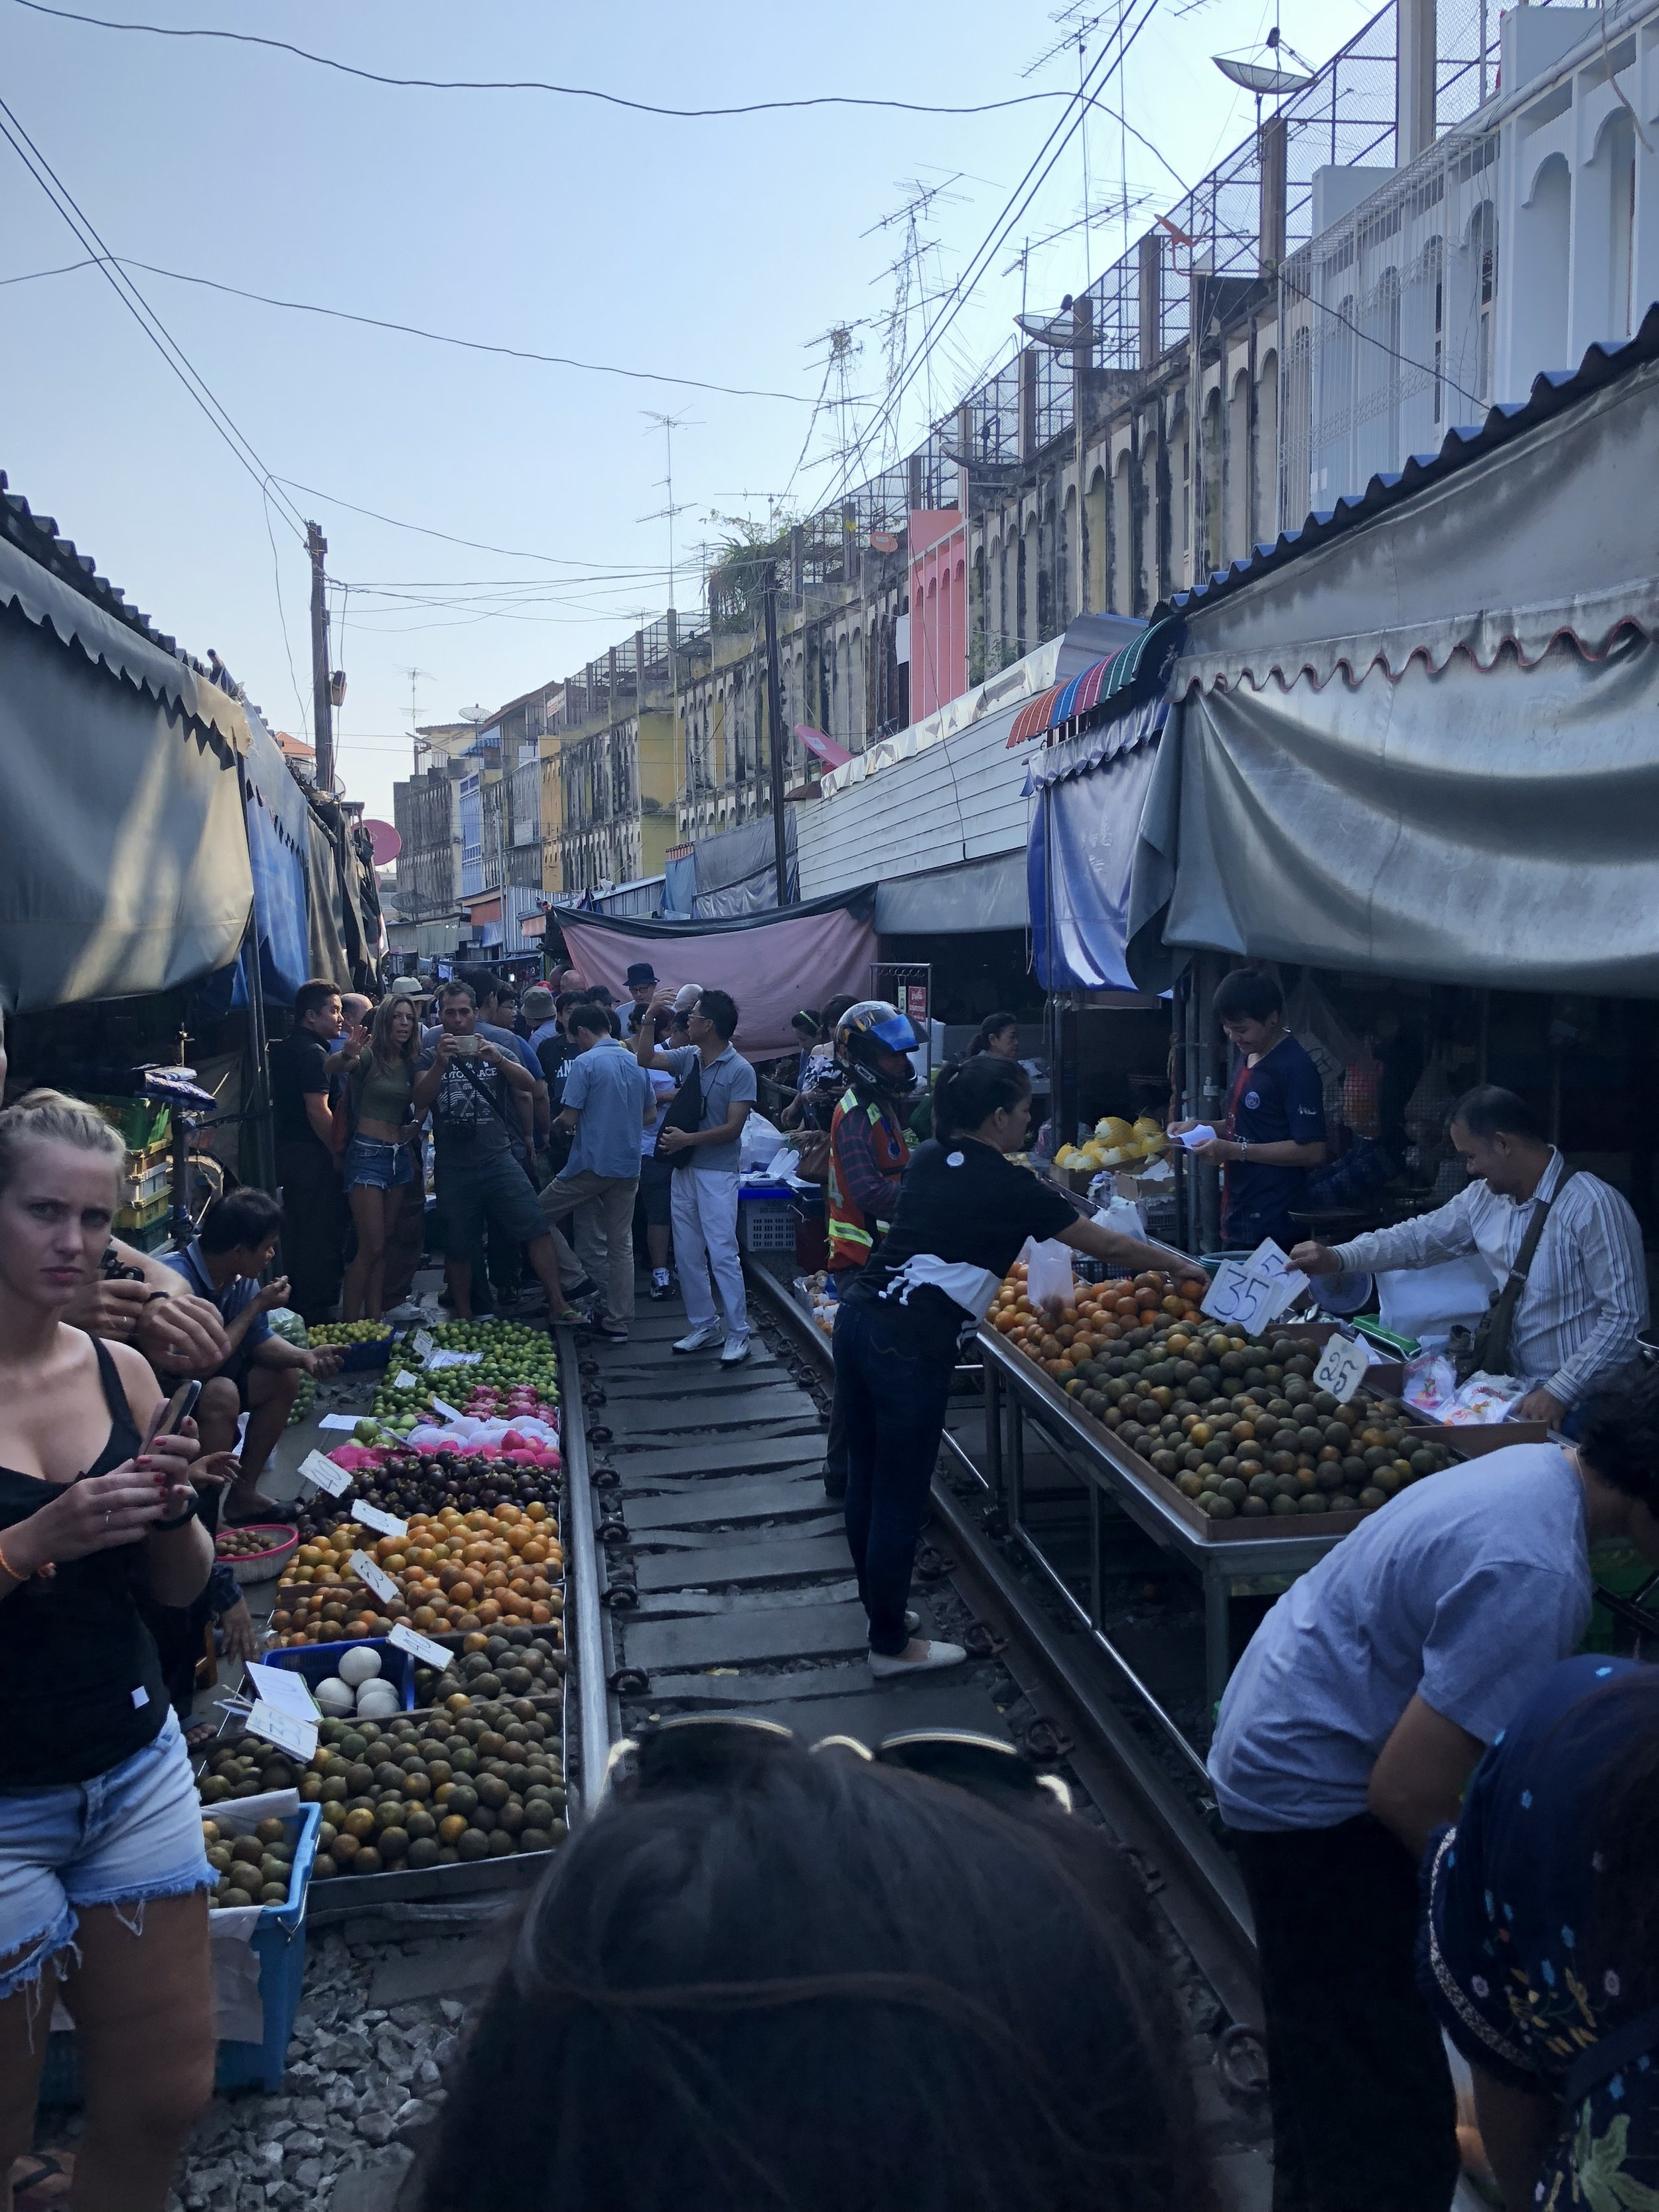 Walking through the market that  is  on the train tracks! You can tell how crowded and tightly compact this whole place was.